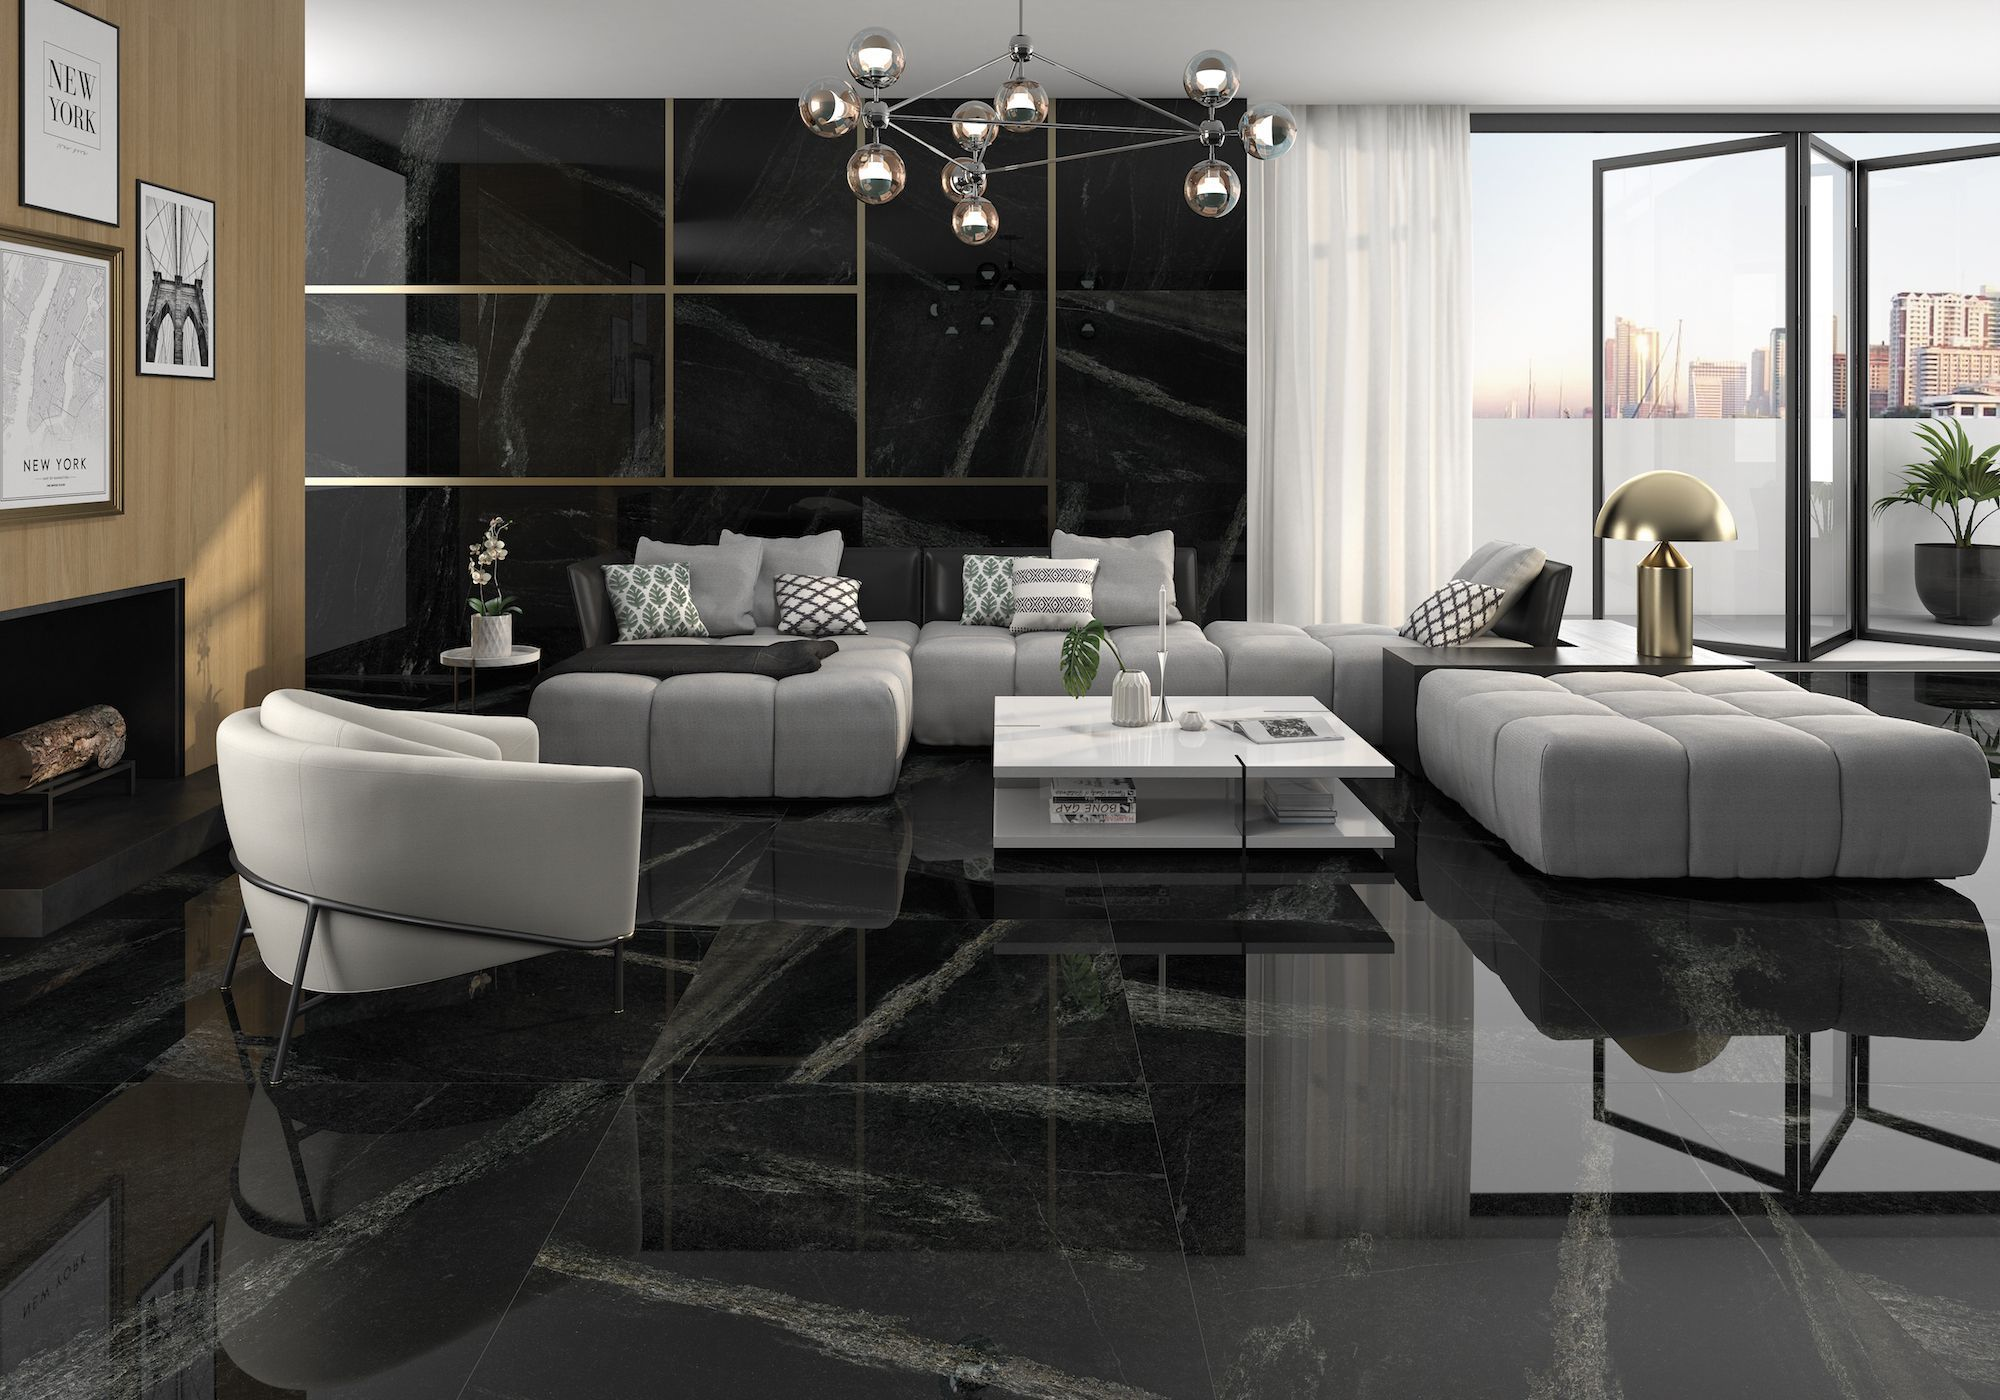 Product Selector Ceramic Floor Tiles Https Archello Com